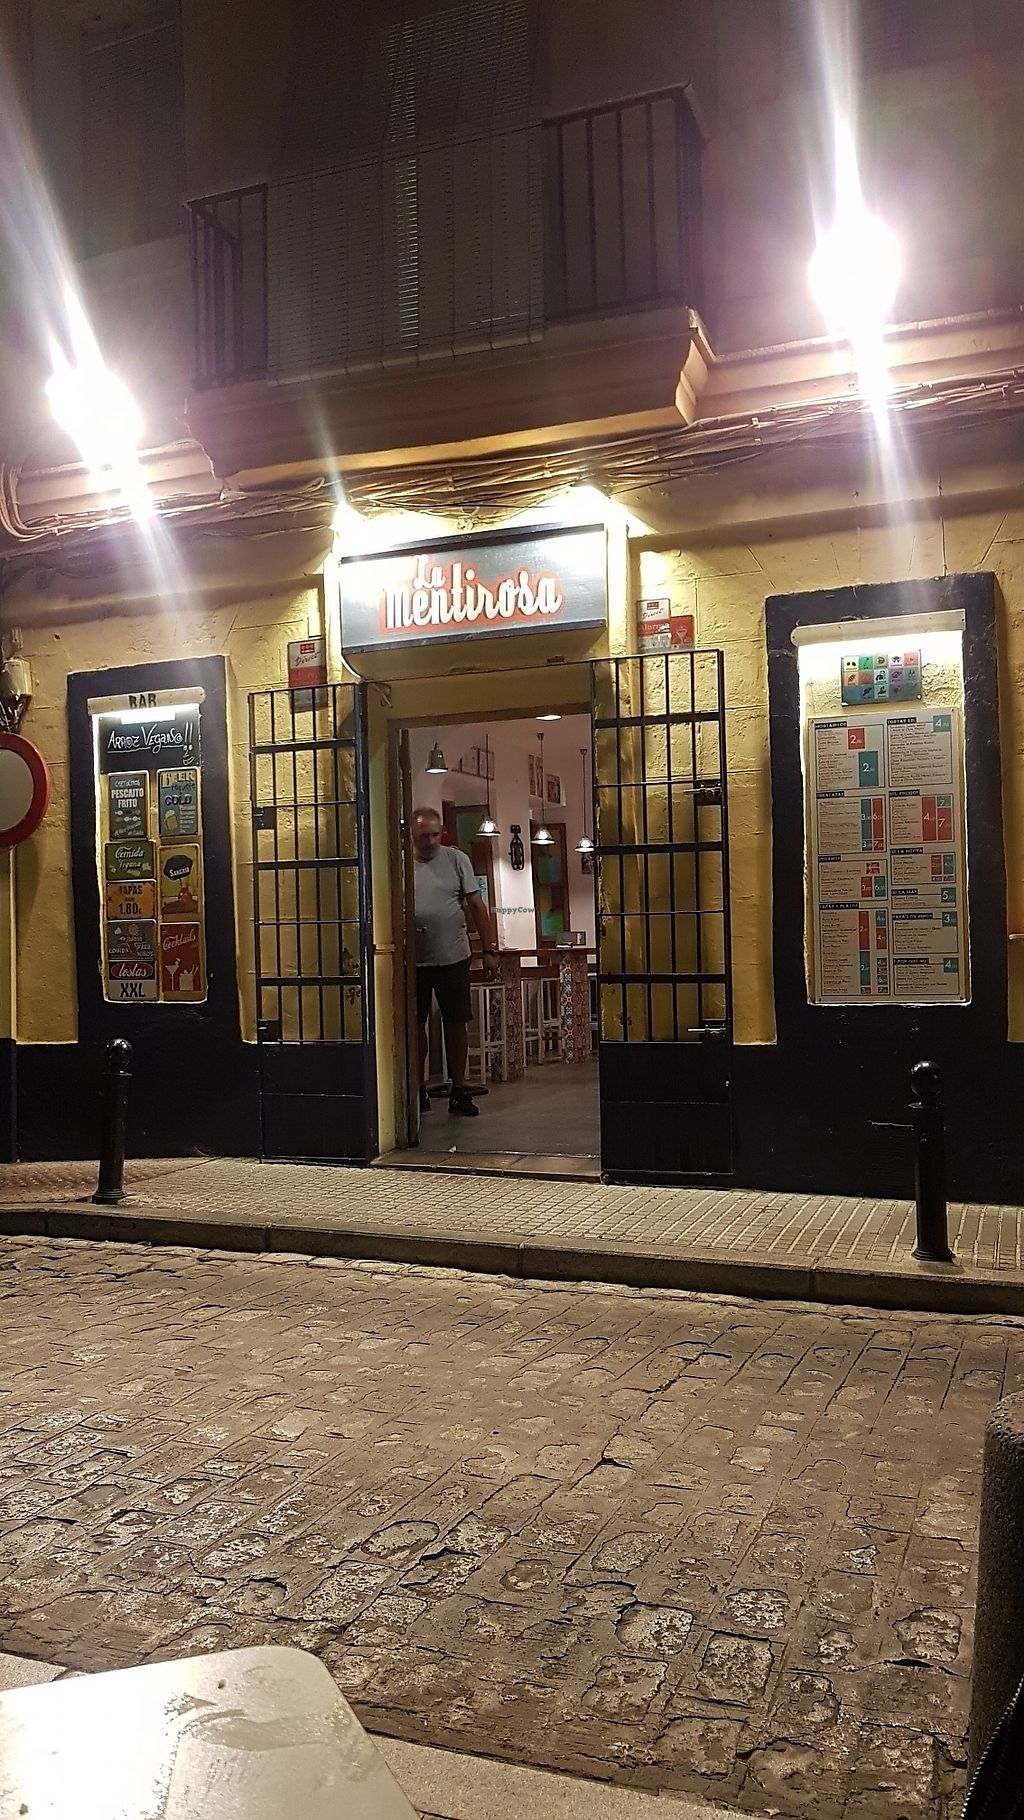 """Photo of La Mentirosa  by <a href=""""/members/profile/Gaabs"""">Gaabs</a> <br/>La mentirosa  <br/> August 15, 2017  - <a href='/contact/abuse/image/98578/292913'>Report</a>"""